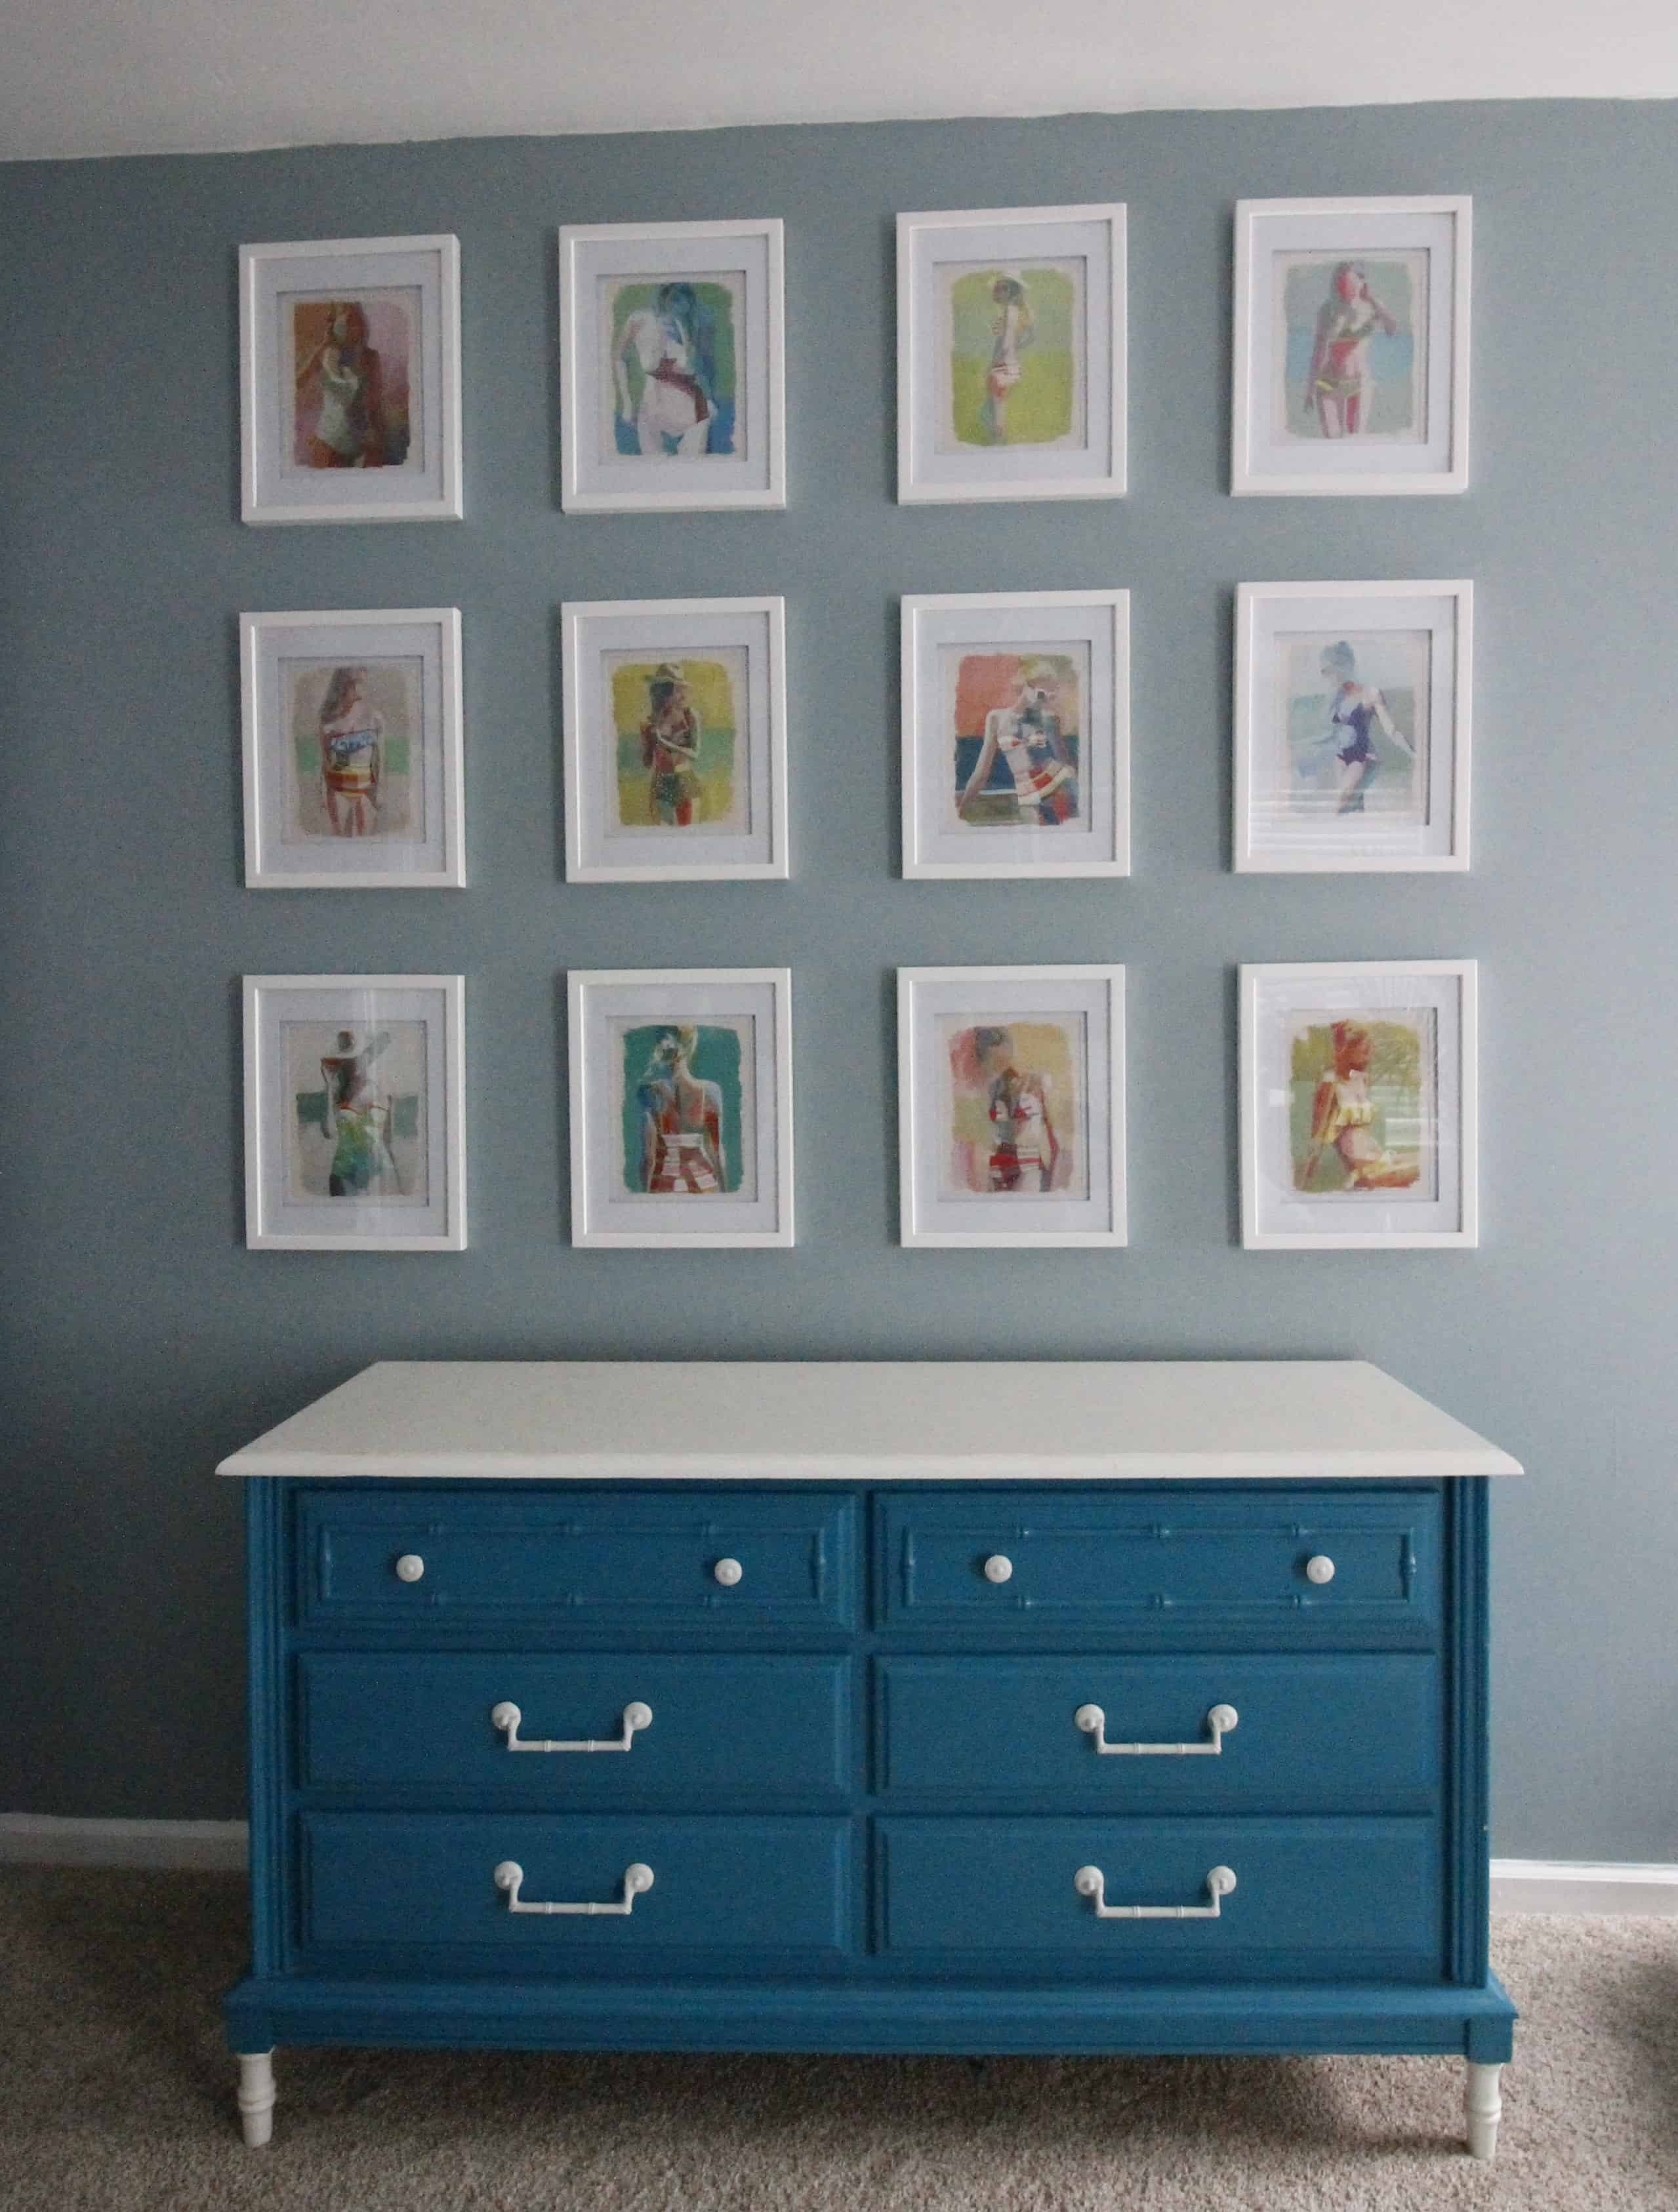 My Favorite Source for Inexpensive Gallery Wall Art - Calendars! Charleston Crafted